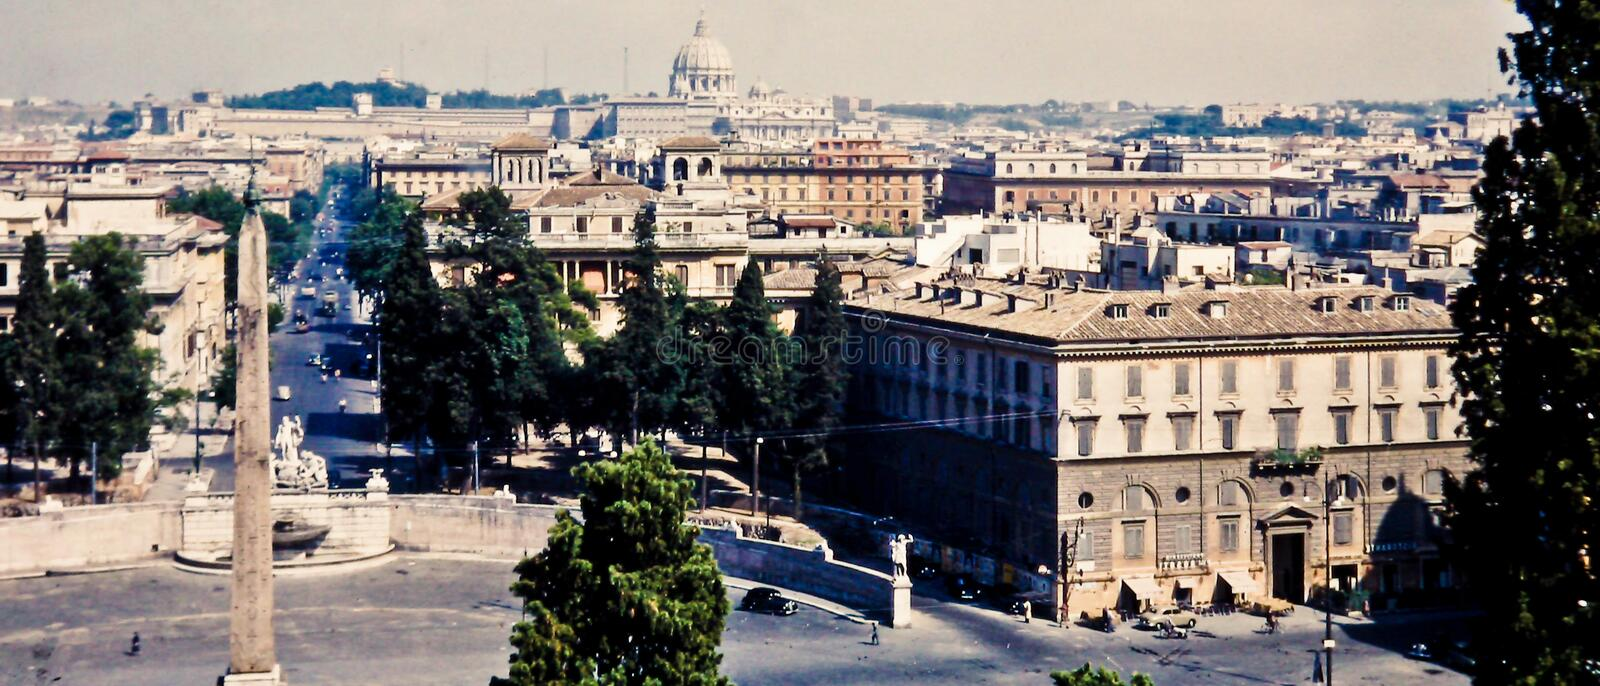 rome images downtown - photo#23